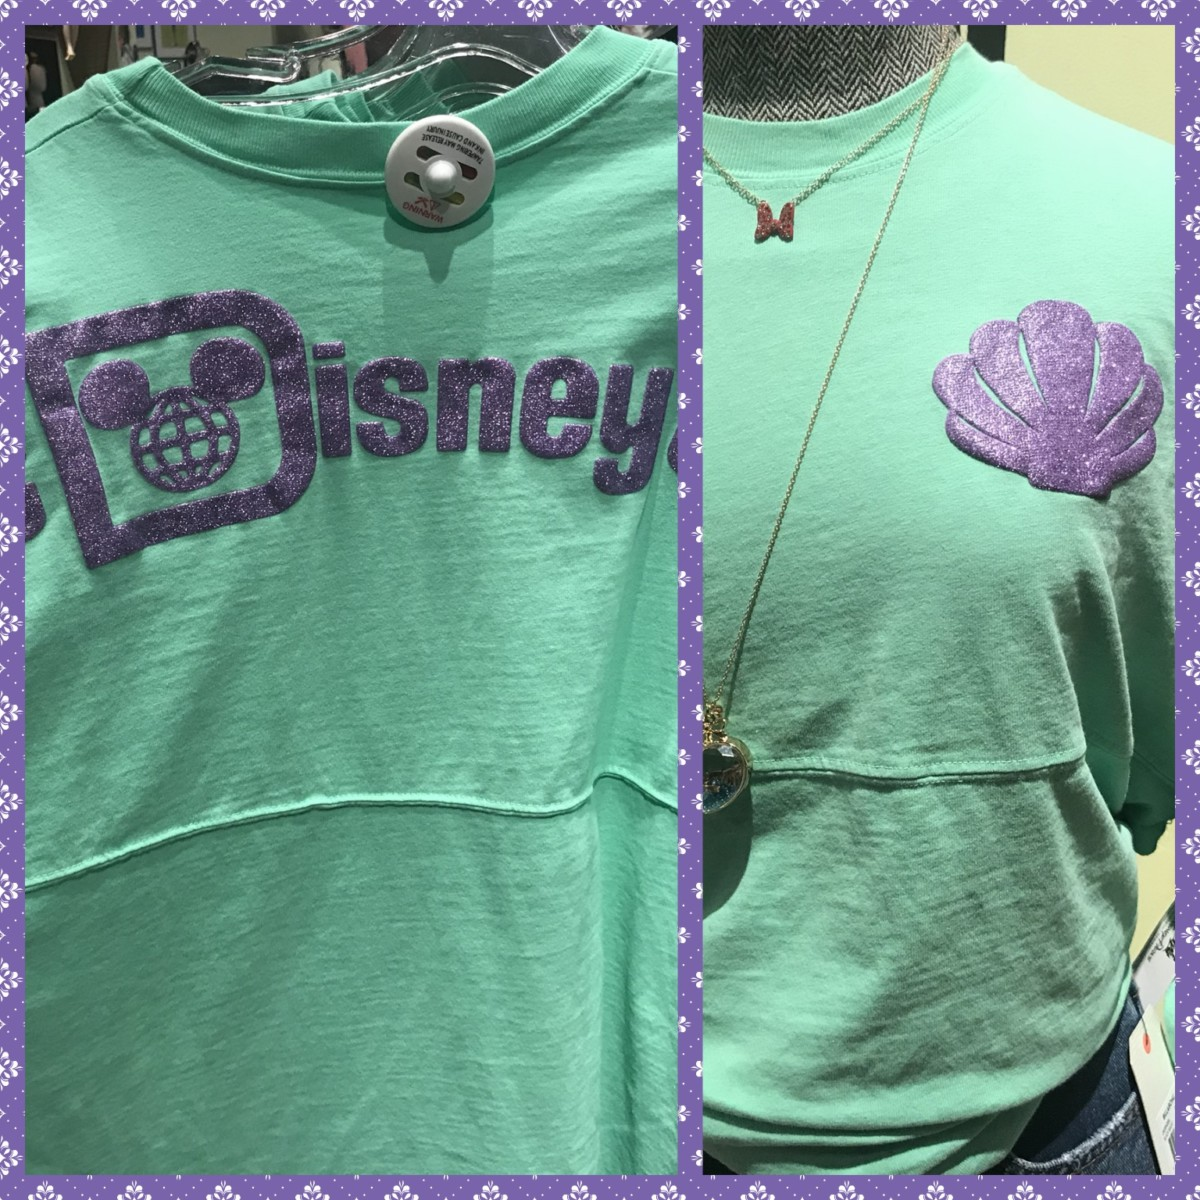 Re-Post! New Princess Spirit Jerseys, Disney Springs! See all 4 Below! #DisneyStyle 4